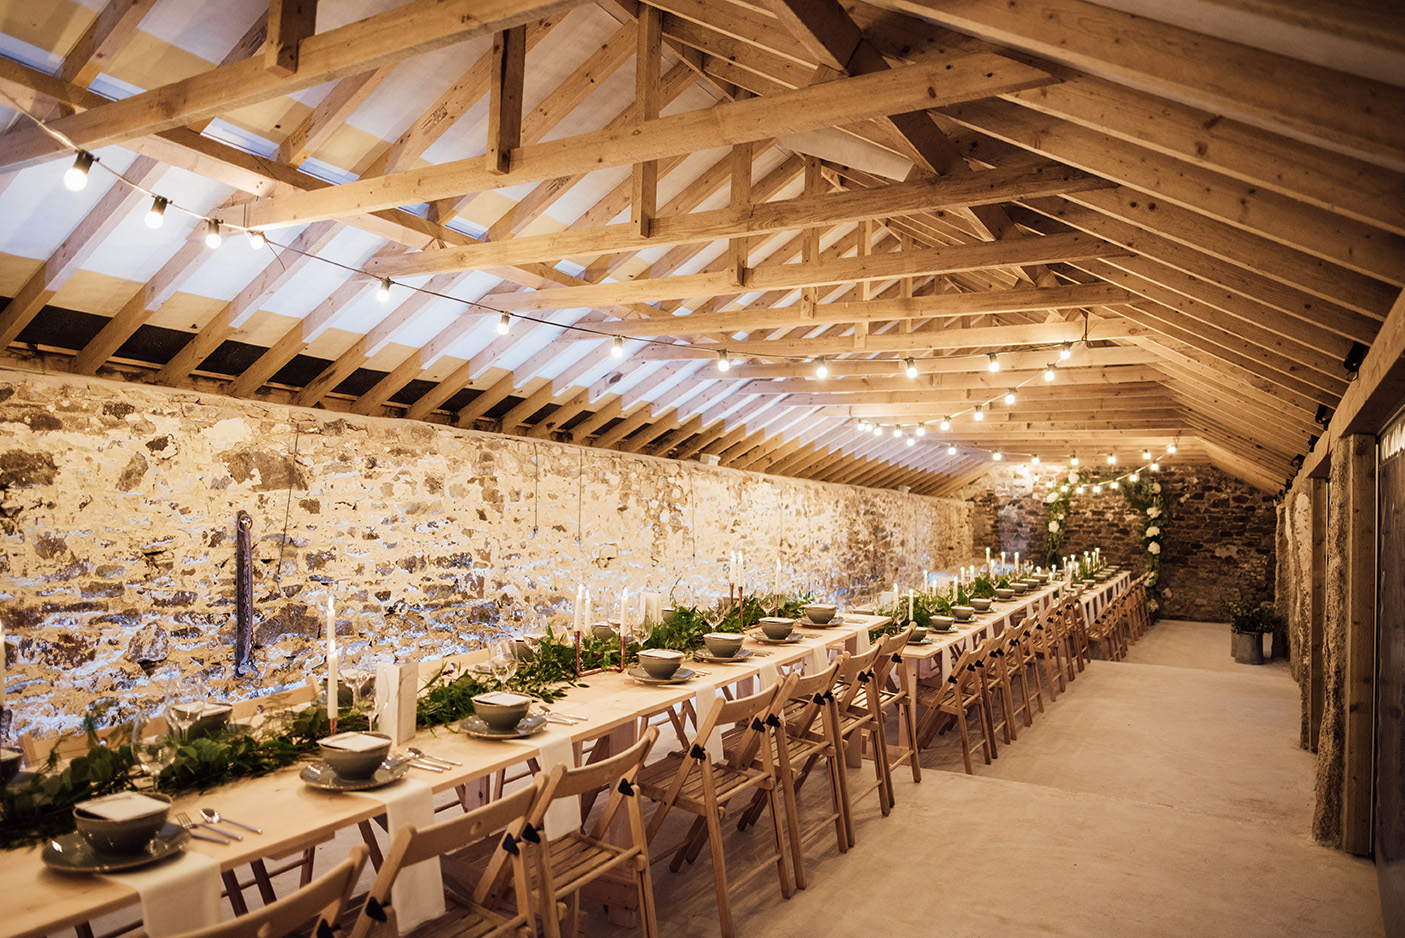 The inside of the Cowyard Barn rustic party and reception space set for a night time dinner at Pengenna Manor Cornwall wedding venue01.jpg